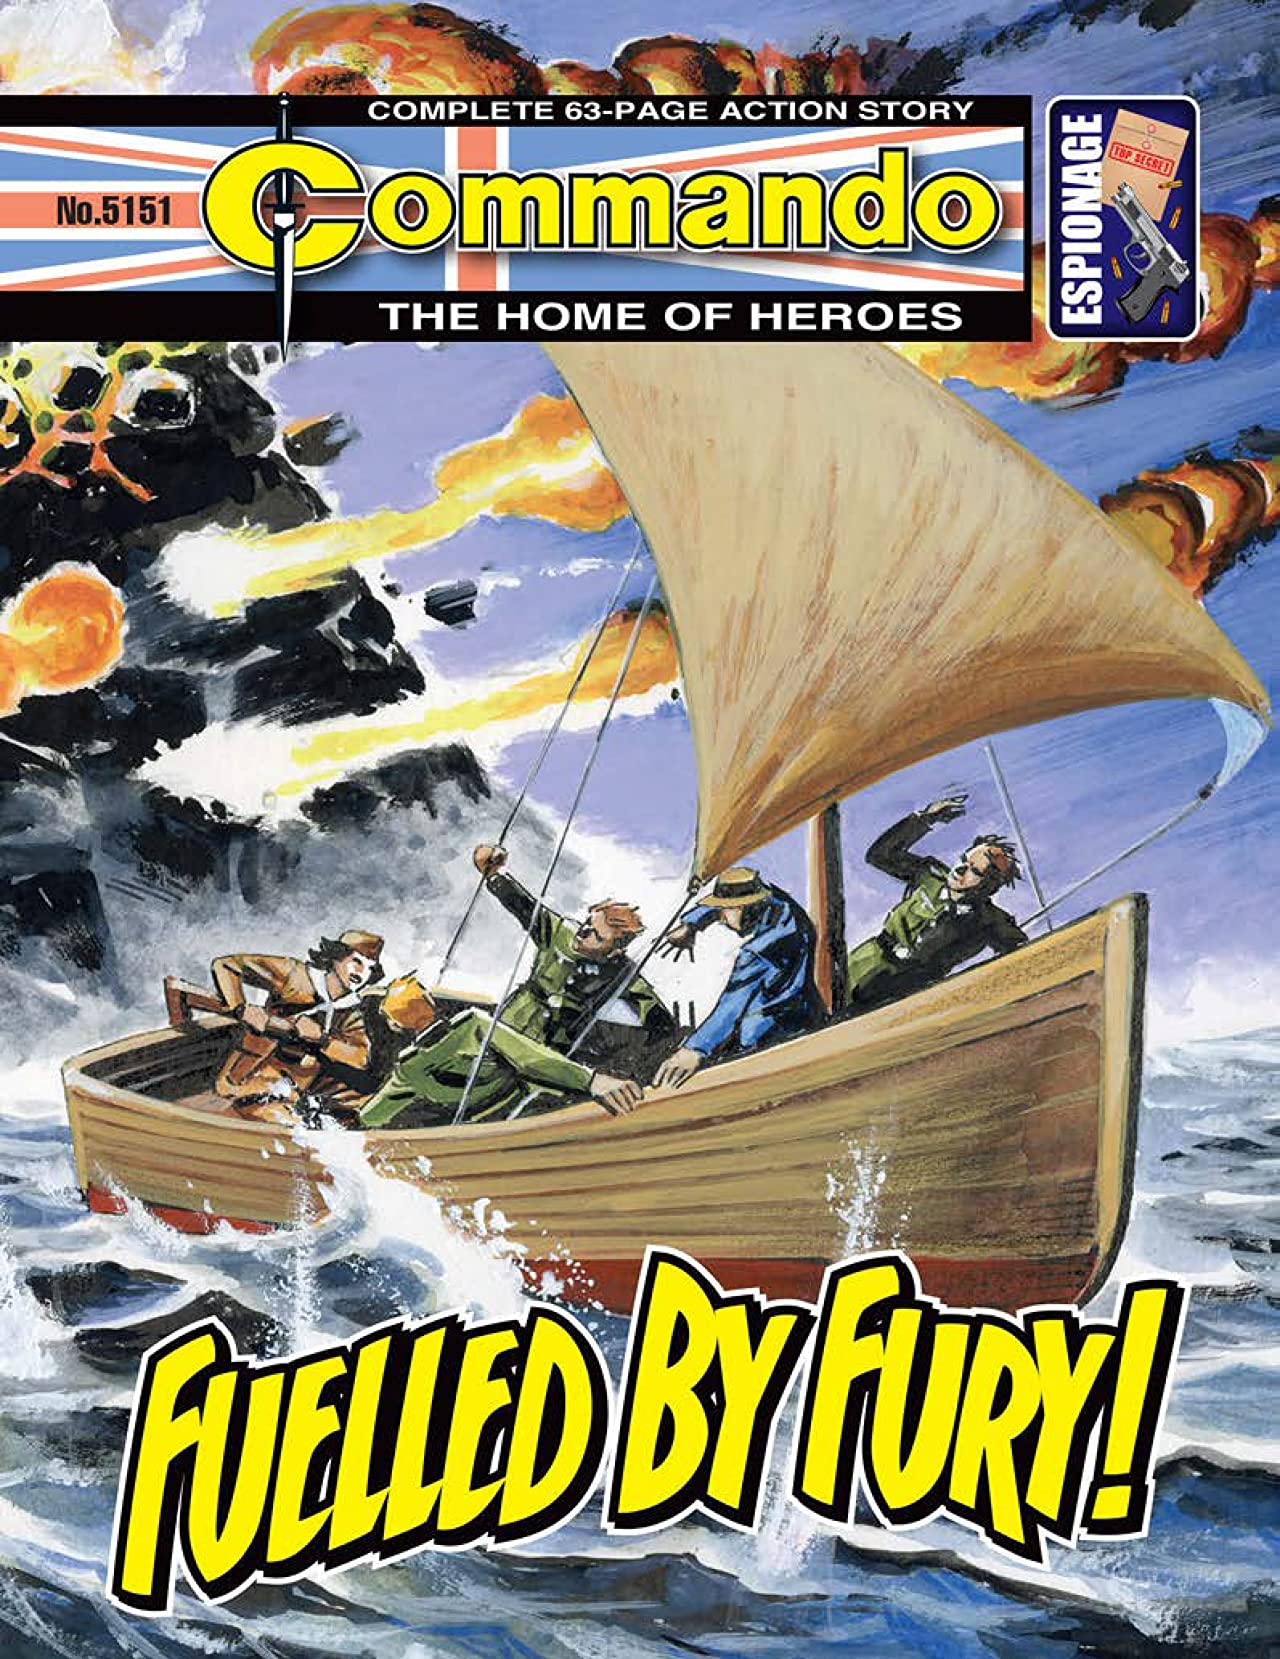 Commando #5151: Fuelled By Fury